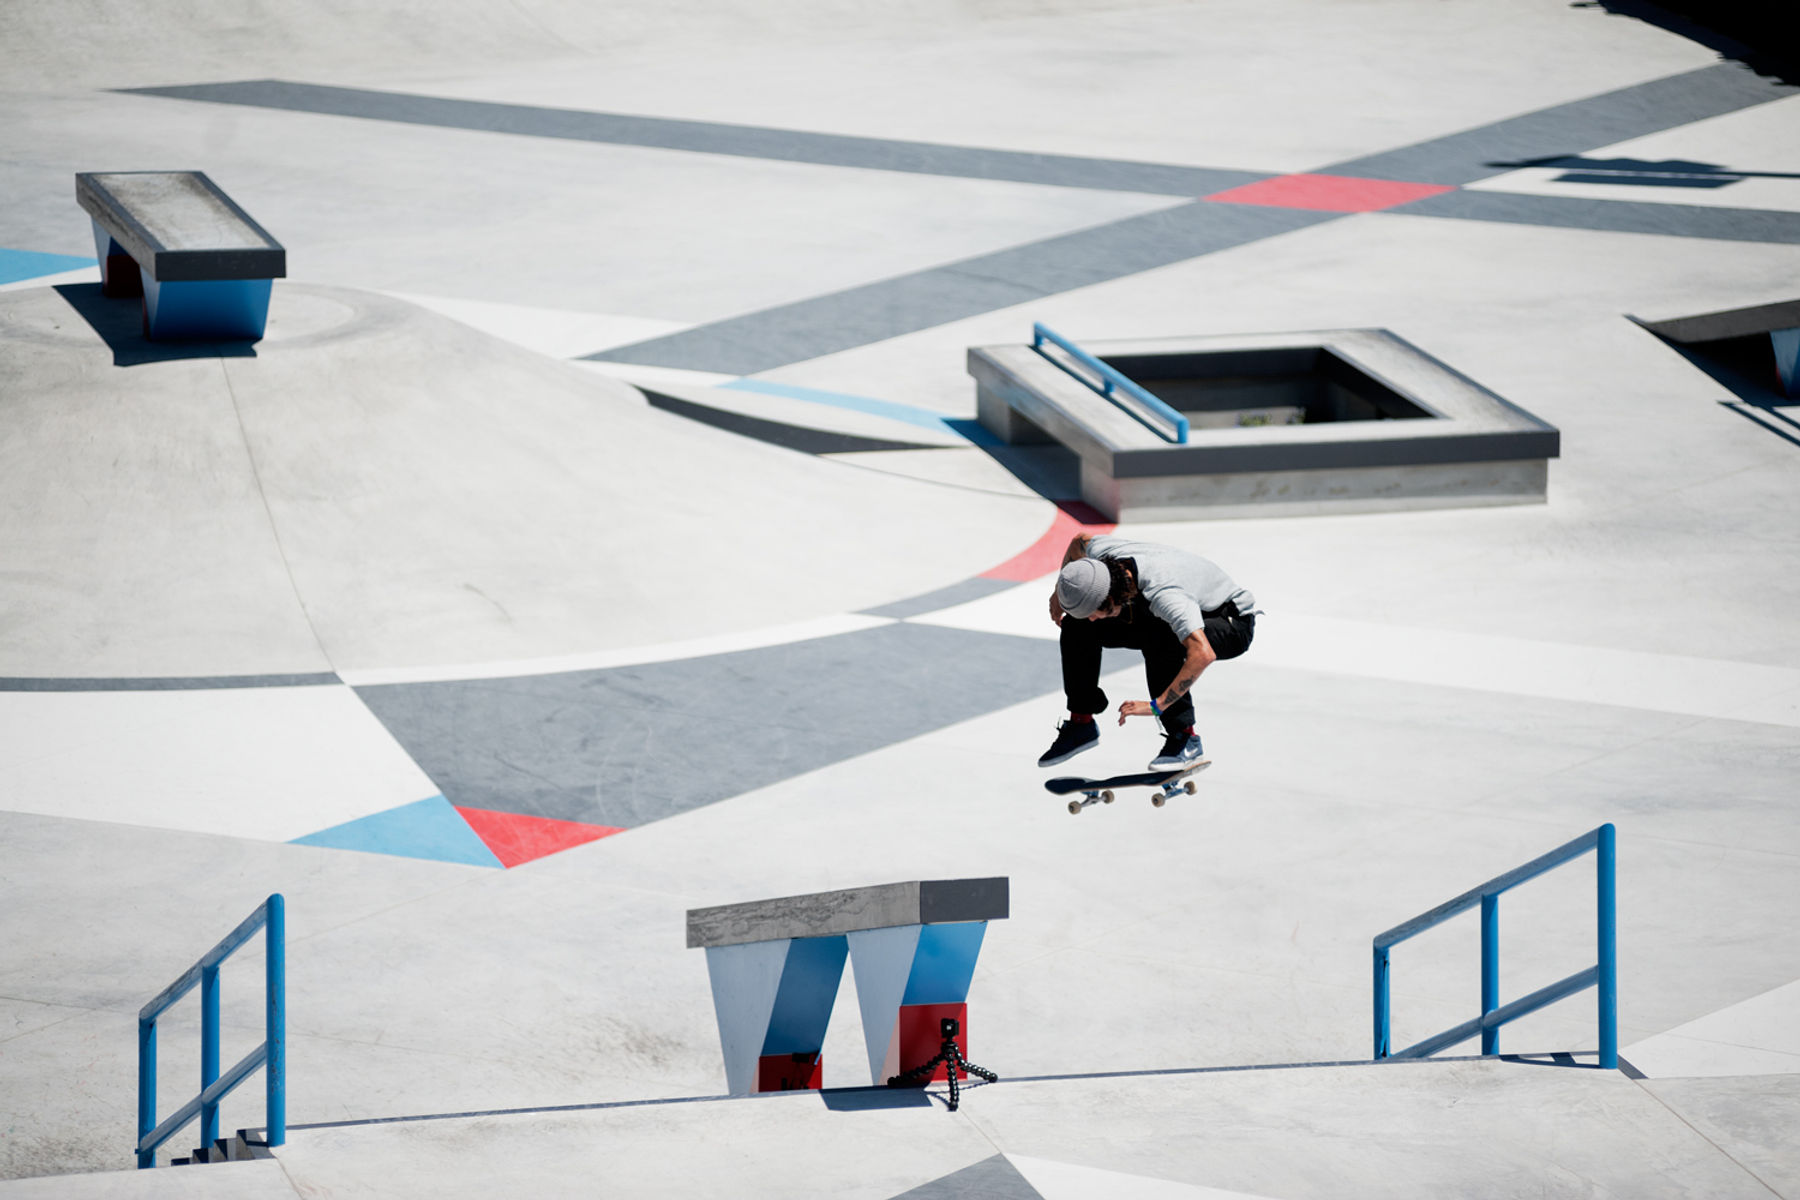 TREVOR_COLDEN_SWITCH_HEELFLIP_GREY_HENRY_KINGSFORD